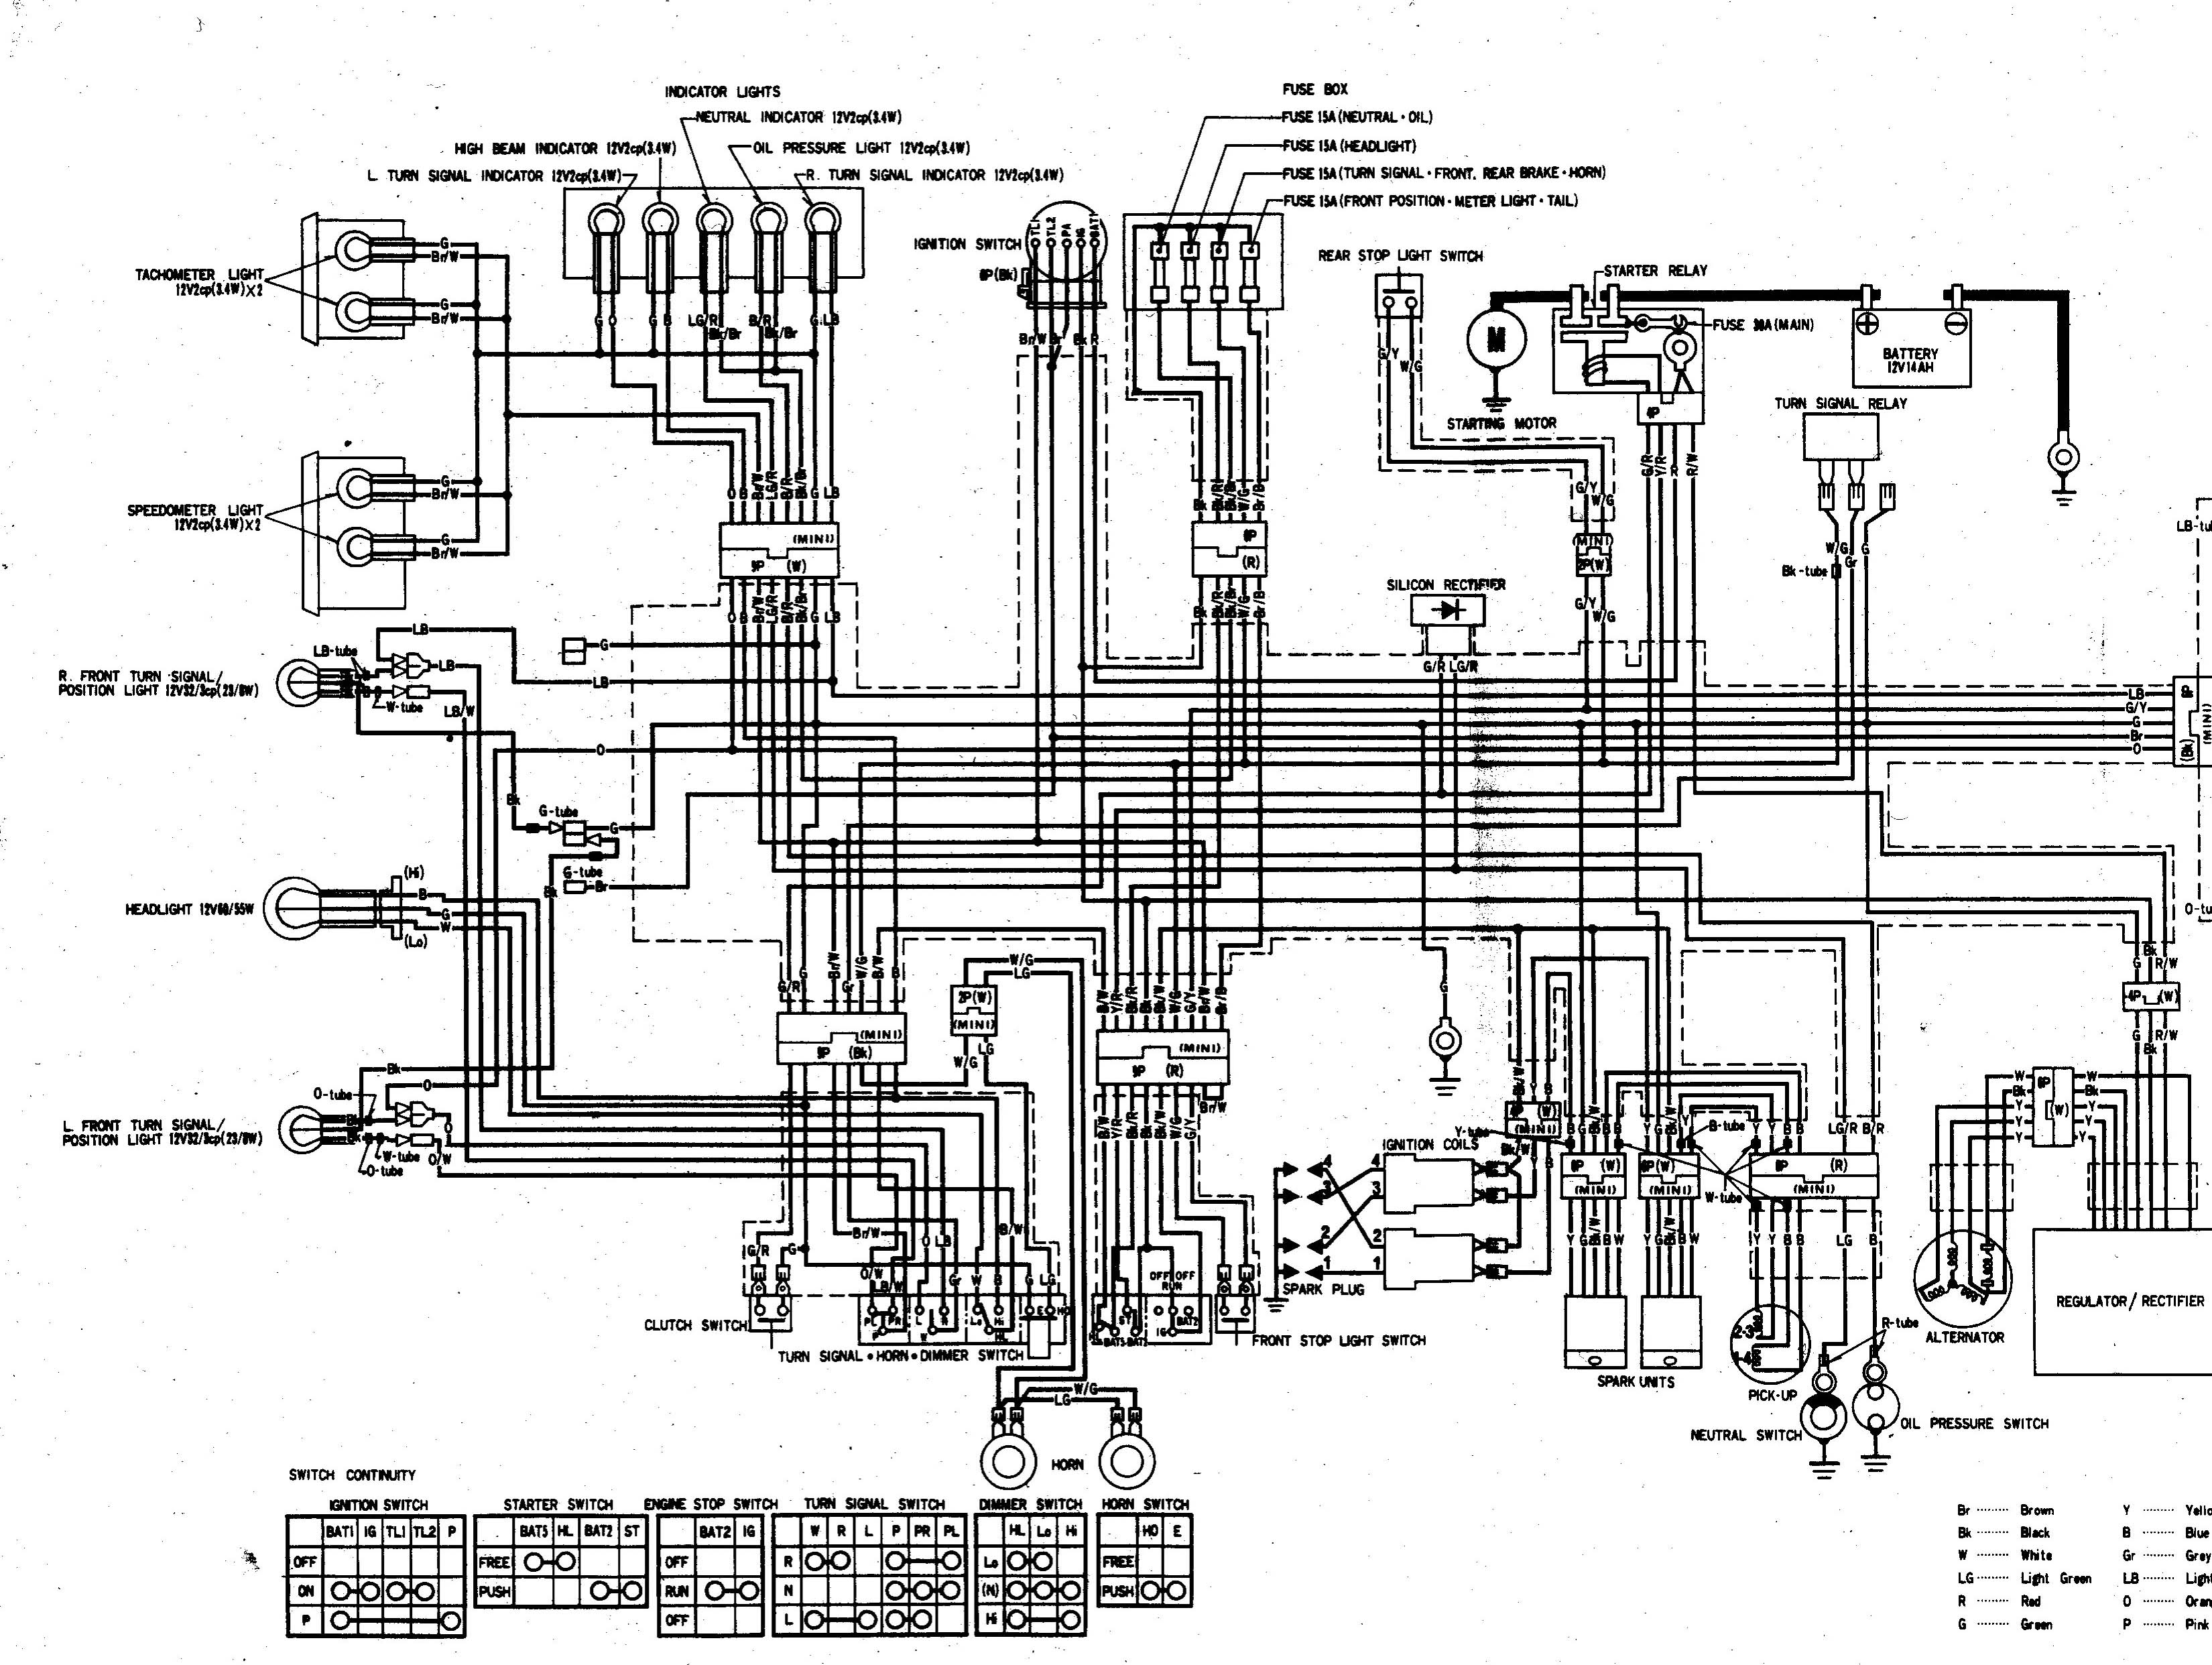 1983 Kawasaki 650 Csr Wiring Diagram, 1983, Free Engine